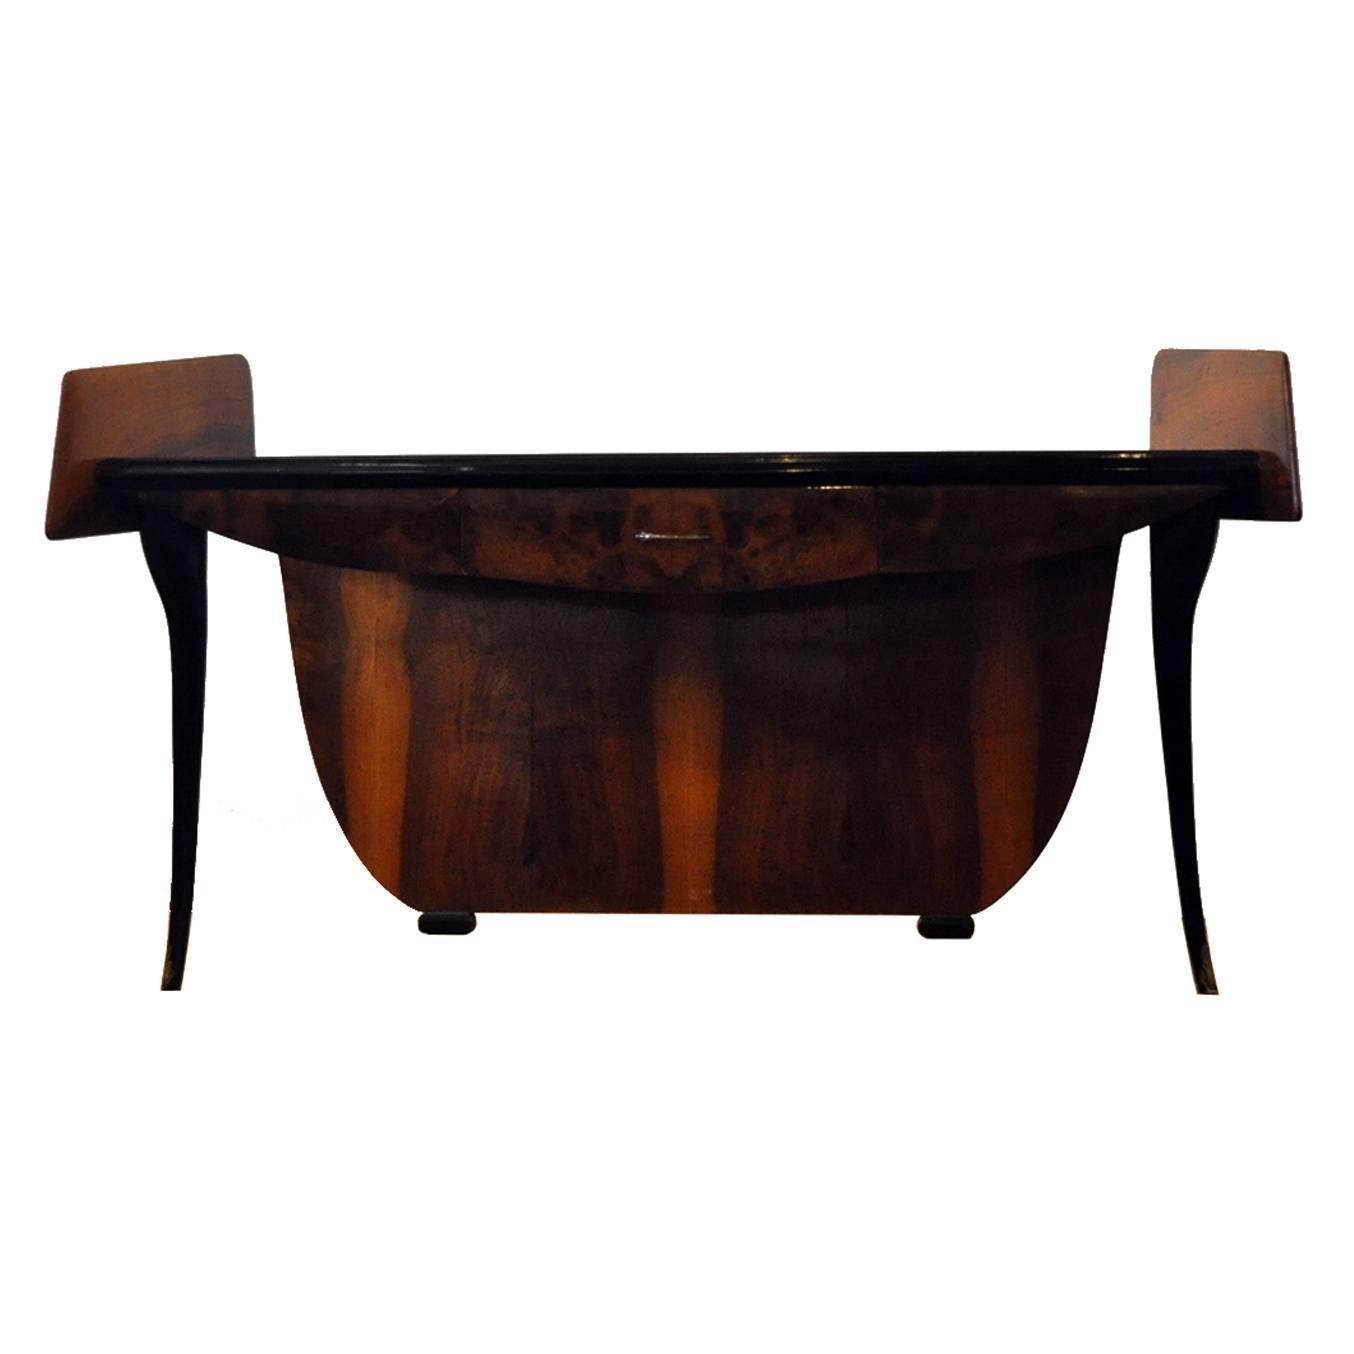 Merveilleux Italian Mid Century Modern Low Console Table For Sale At 1stdibs